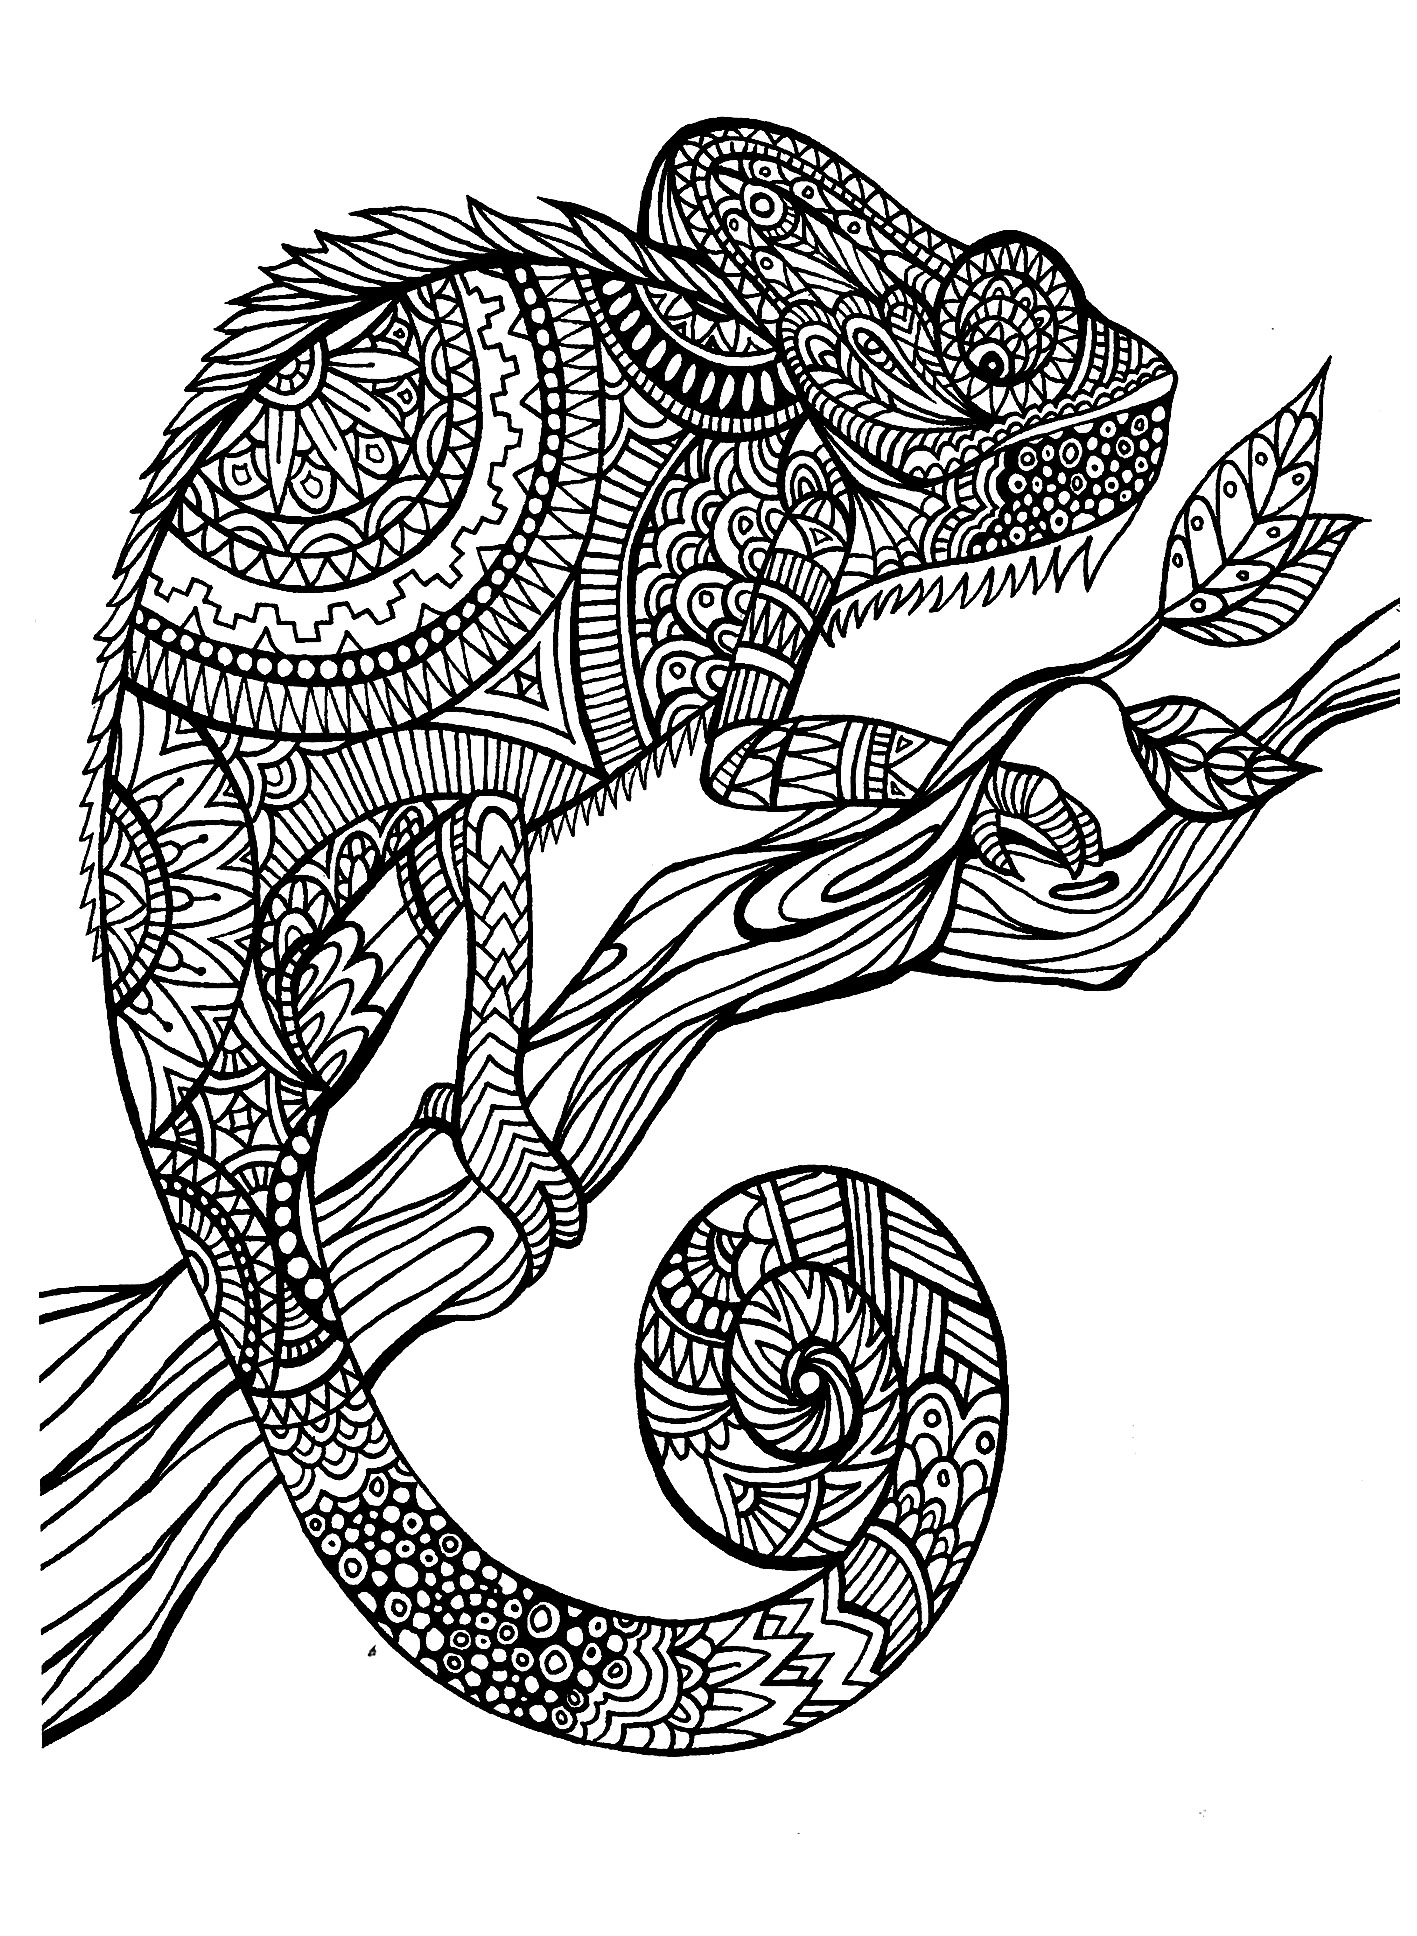 A magnificien cameleon to color, drawn with zentangle patterns